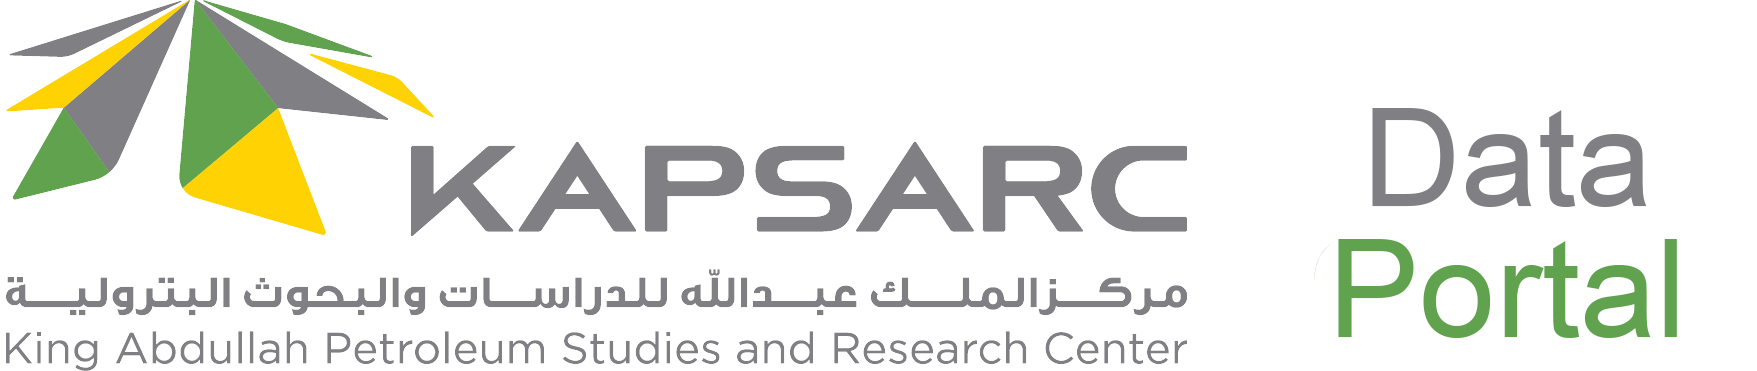 KAPSARC Data Portal